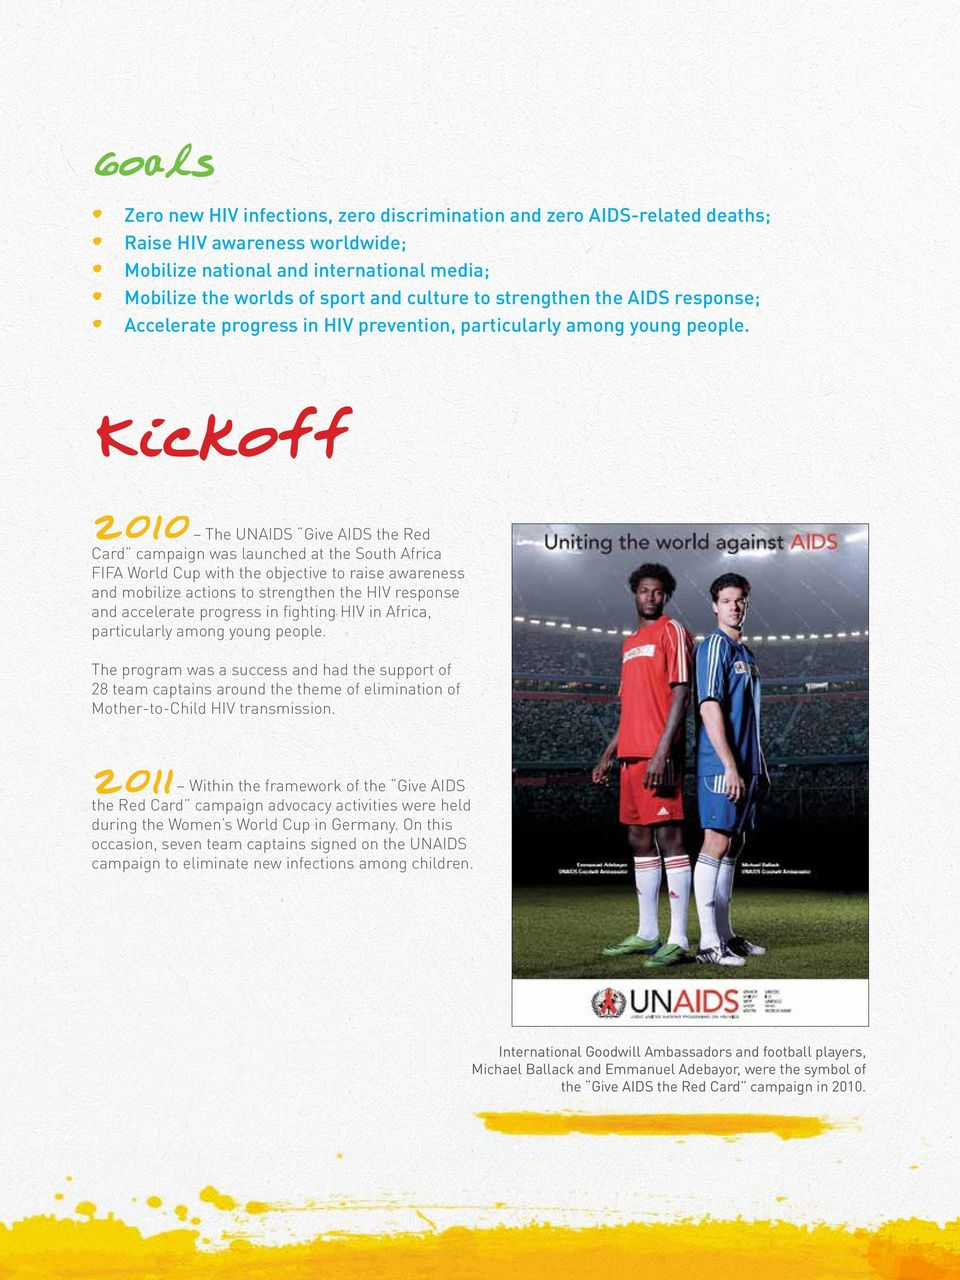 Kickoff 2010 The UNAIDS Give AIDS the Red Card campaign was launched at the South Africa FIFA World Cup with the objective to raise awareness and mobilize actions to strengthen the HIV response and